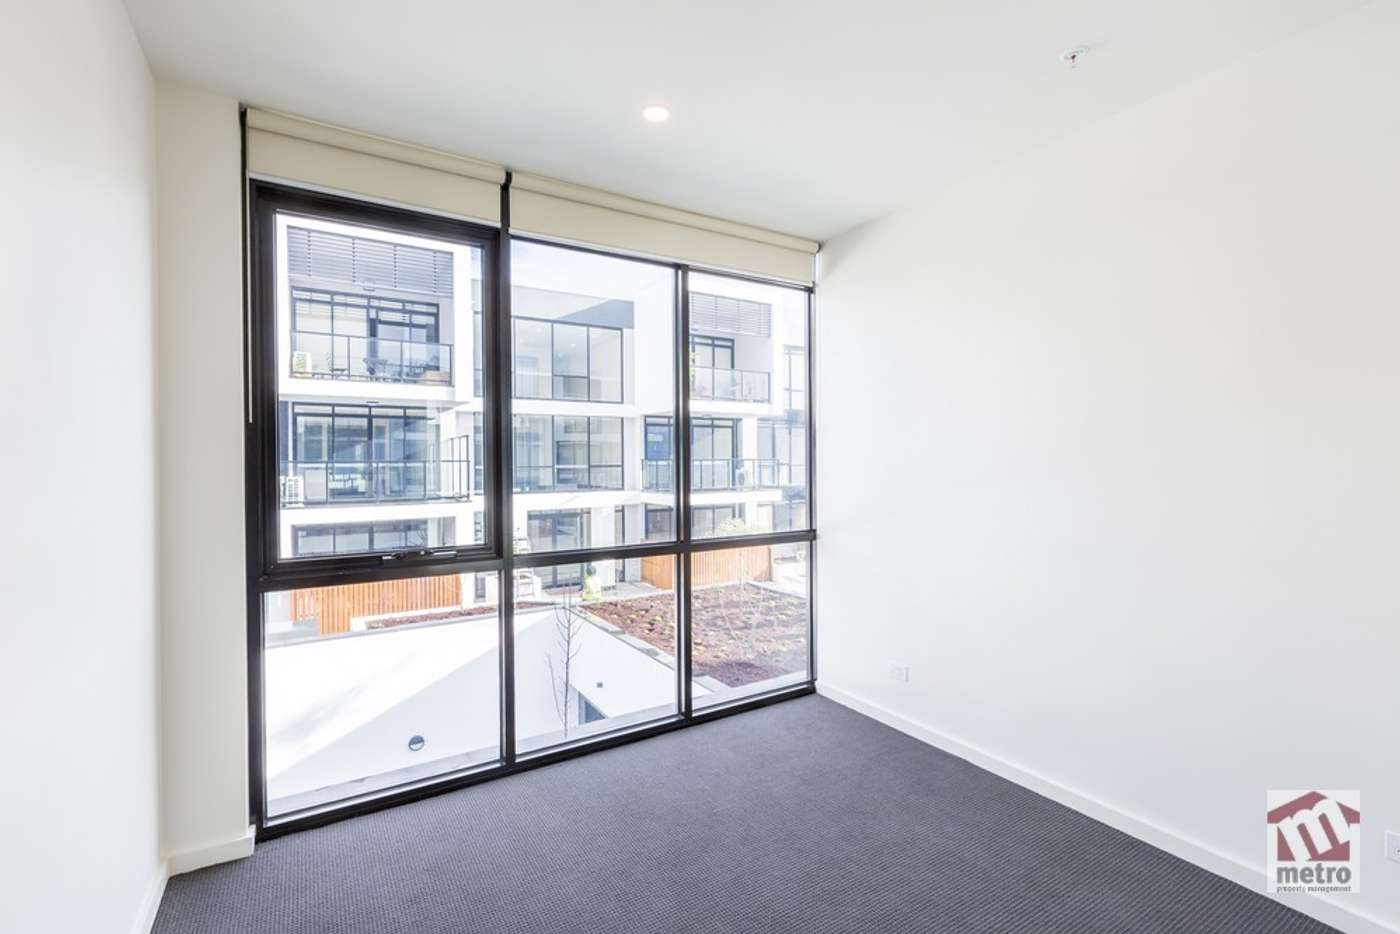 Fifth view of Homely apartment listing, 110B/23-35 Cumberland Road, Pascoe Vale VIC 3044